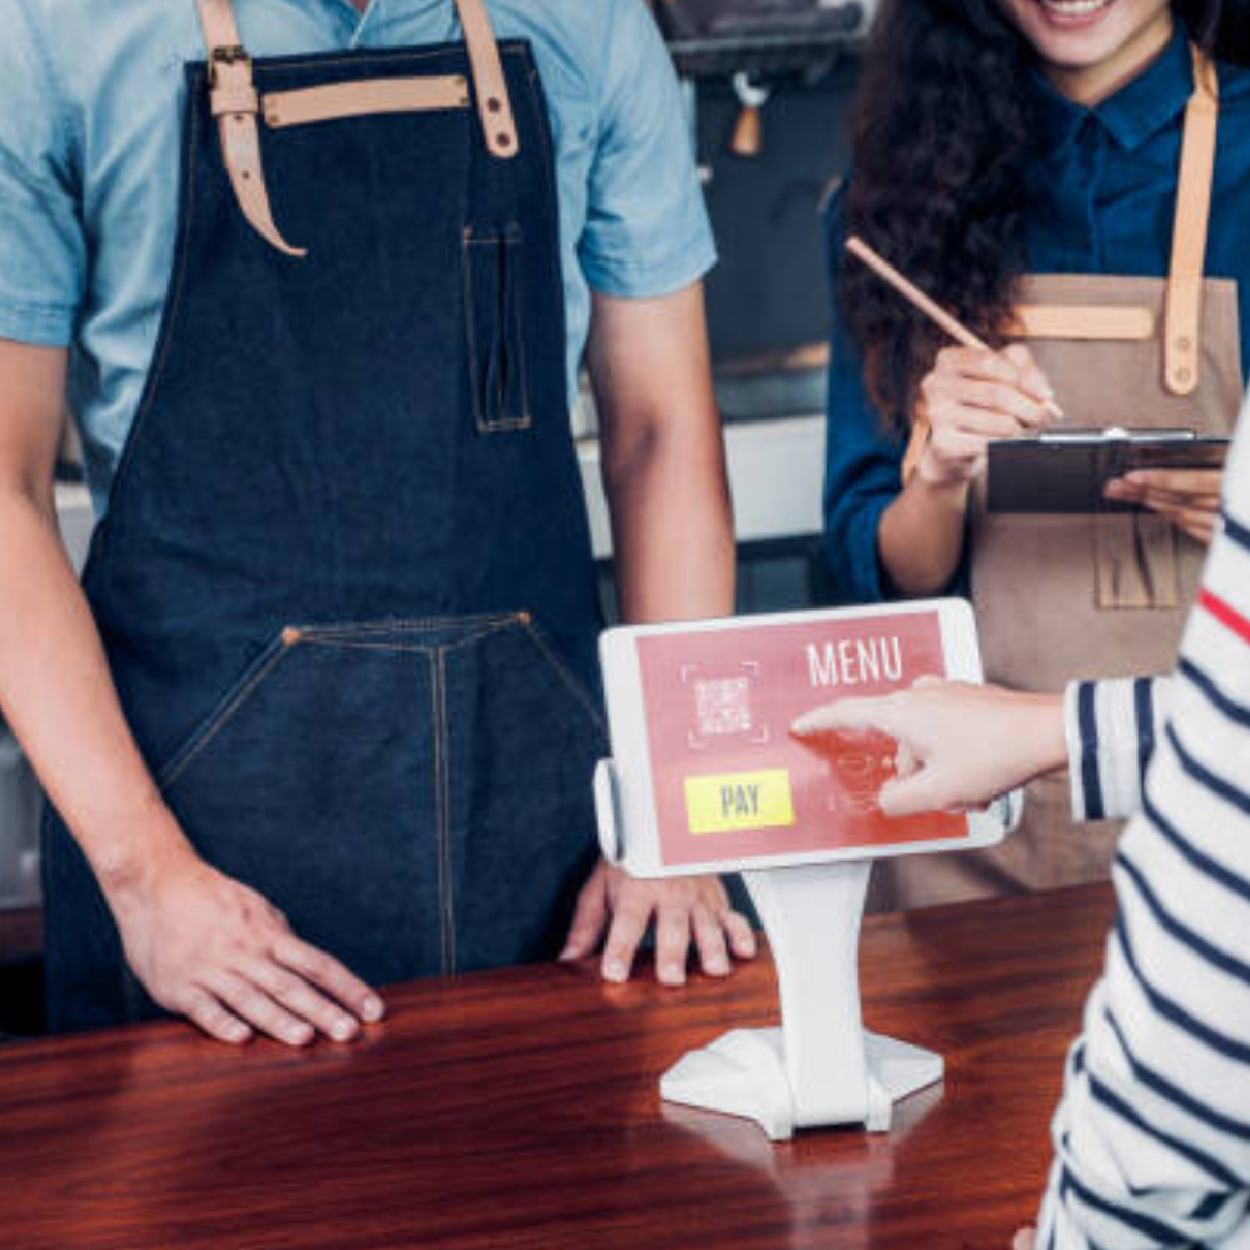 Retailers are constantly looking for new ways to connect digitally with customers both on-site and through data -